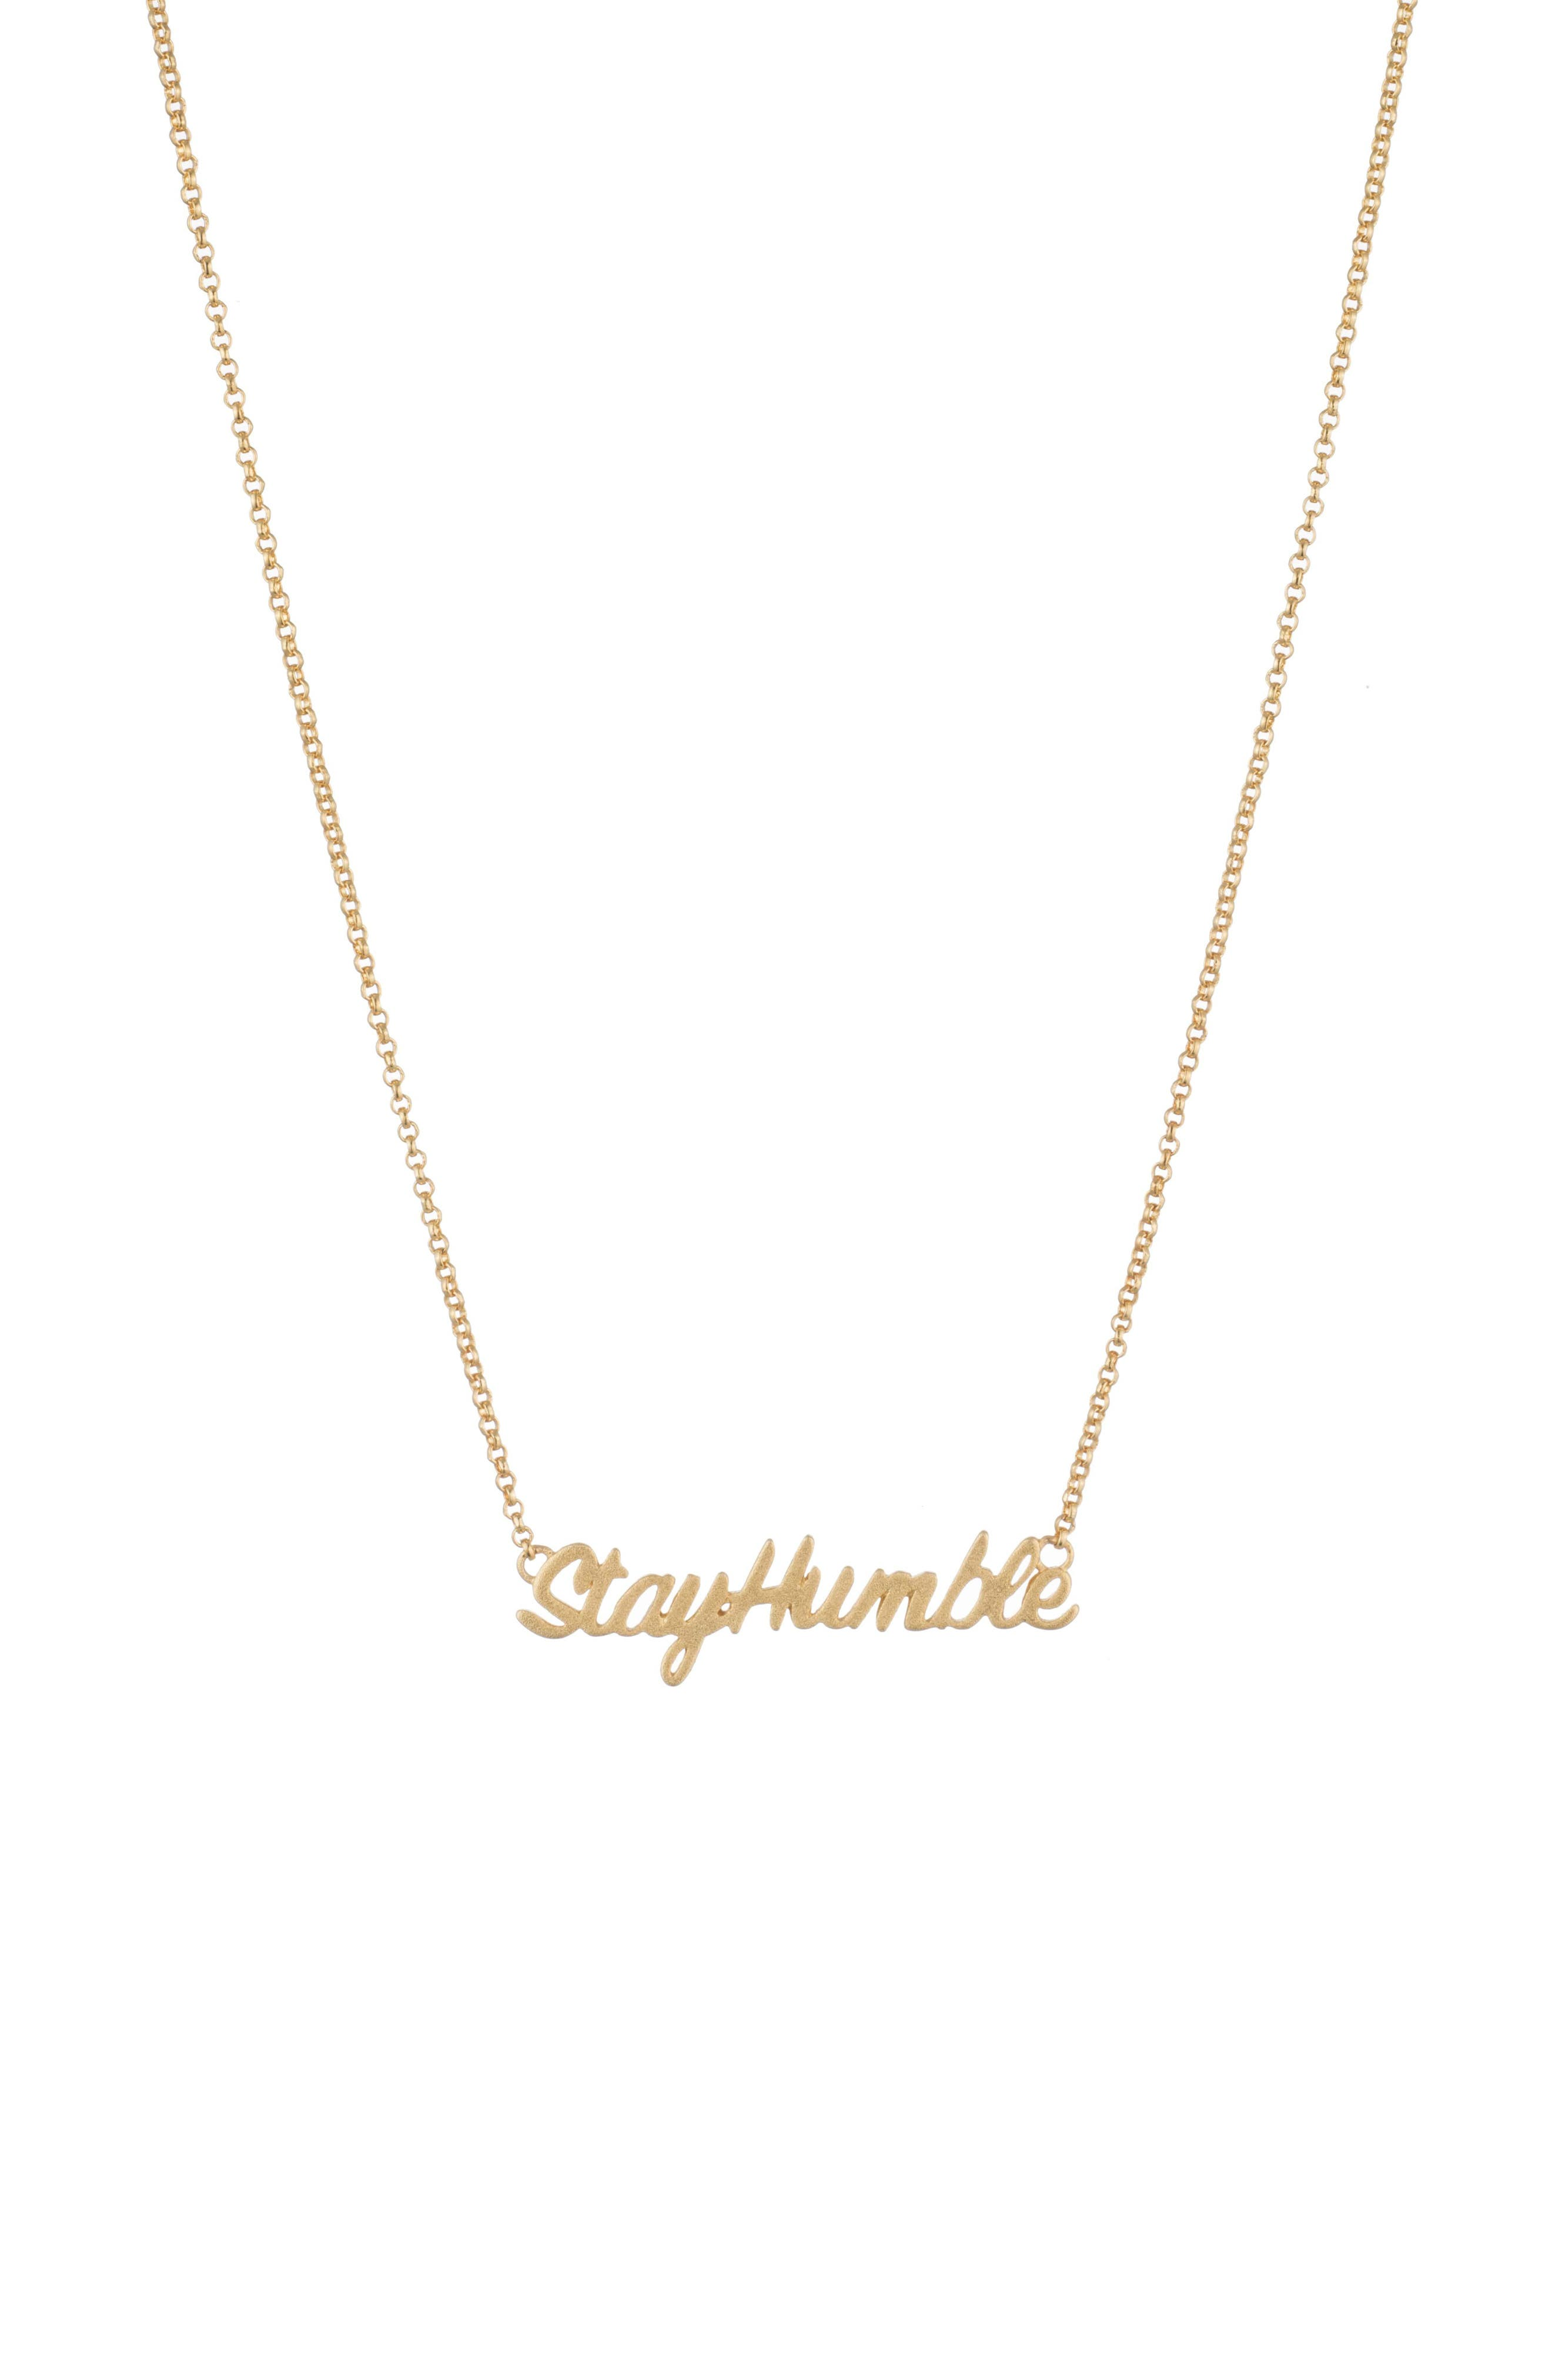 Stay Humble Necklace,                         Main,                         color, Gold